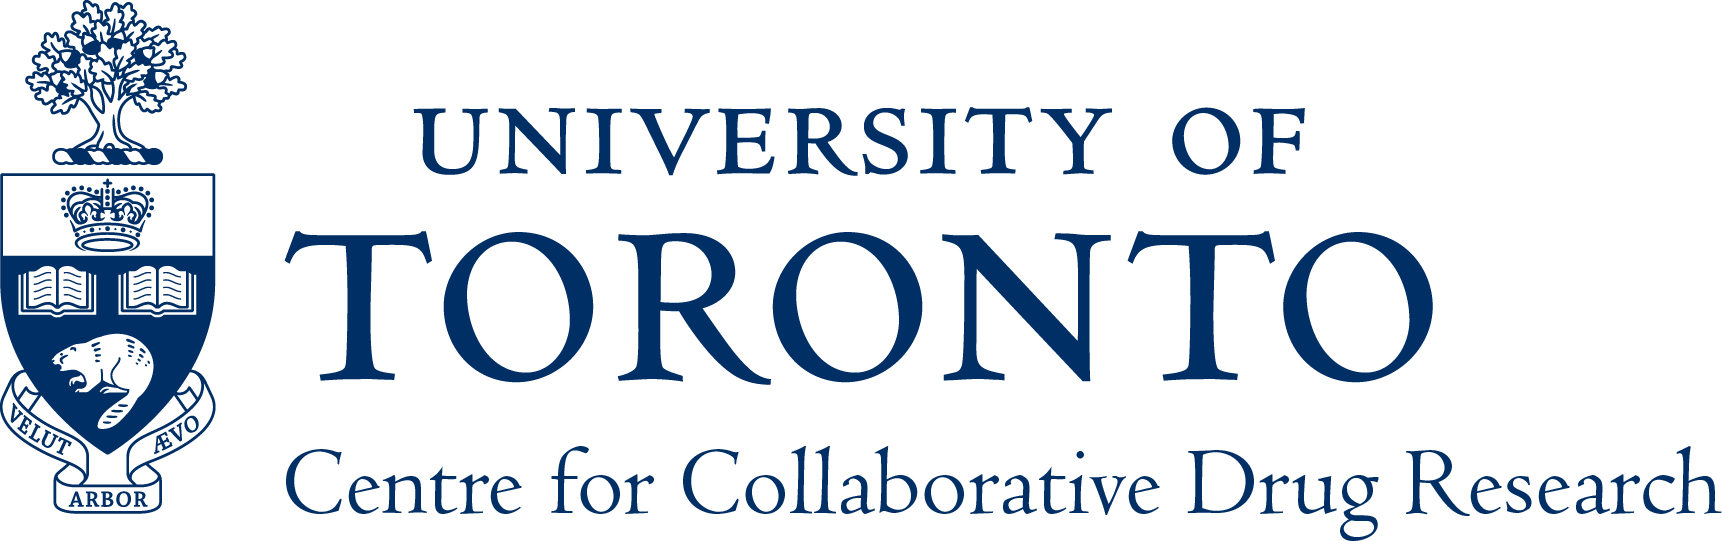 University of Toronto, Centre for Collaborative Drug Research